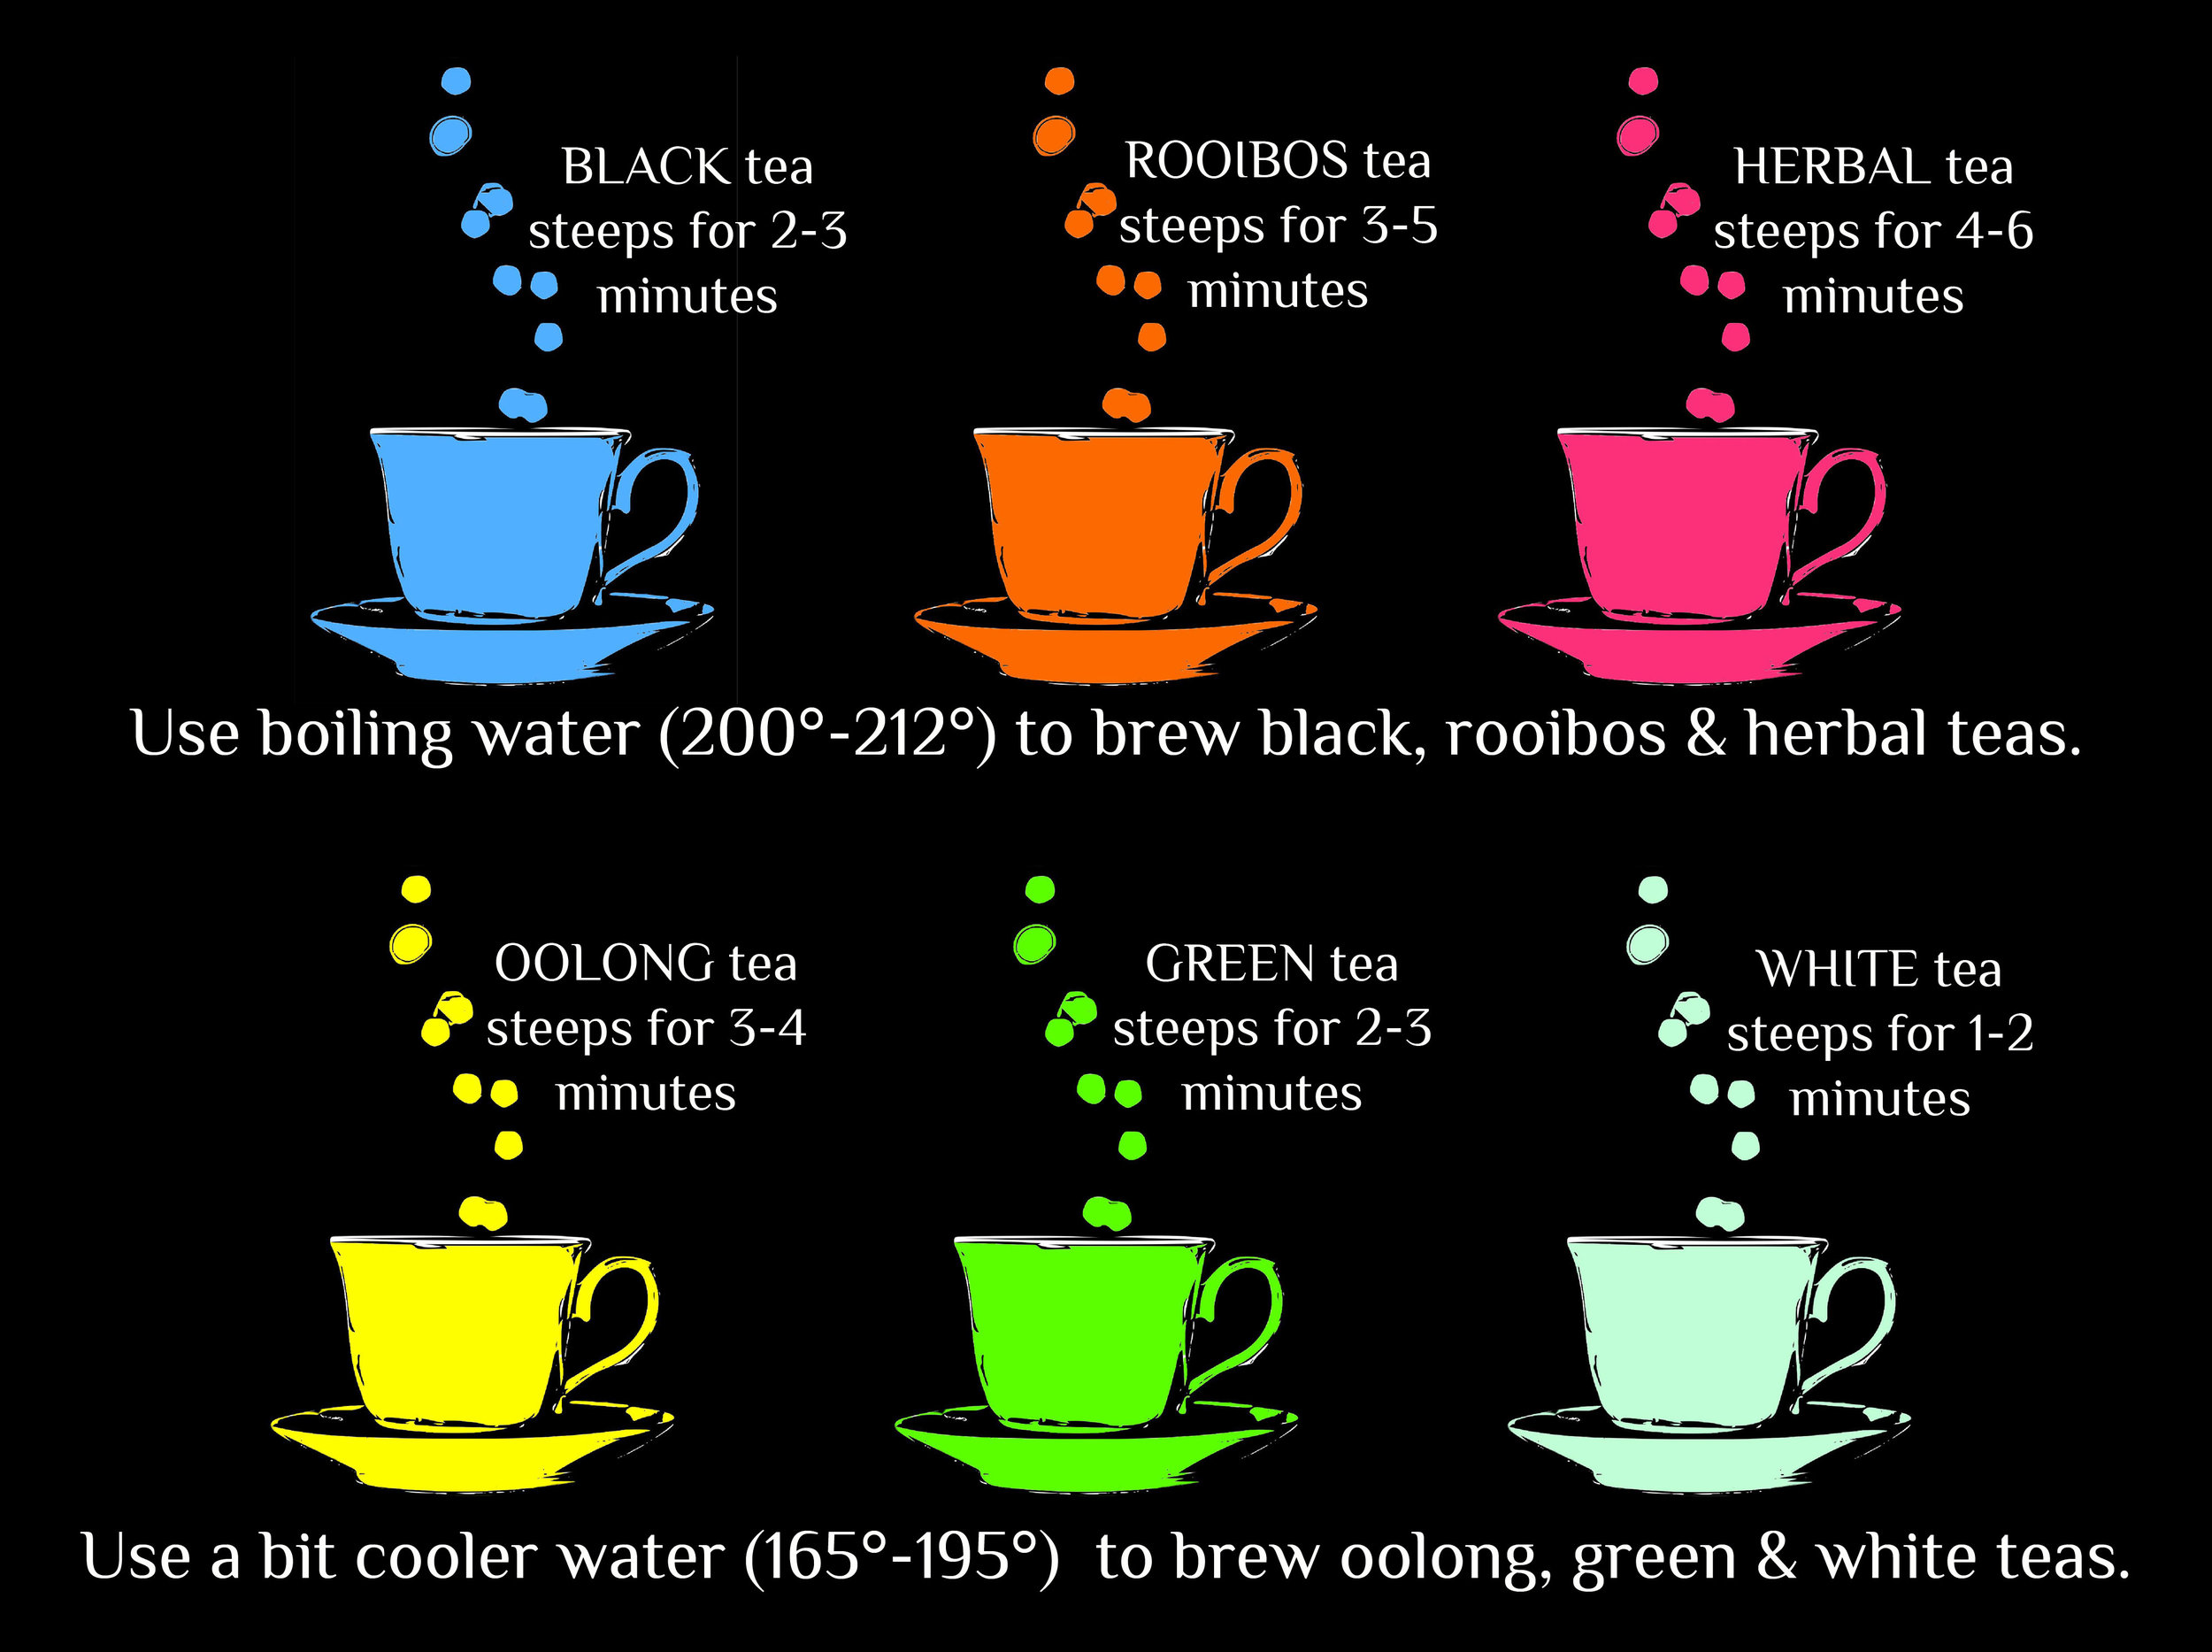 Your Brew Guide for Loose Leaf Teas! - Use 1 teaspoon per 8 oz of tea, and steep according to this chart. For stronger flavor, use more tea not more time. With green or oolong teas, try steeping a second or third time to experience new flavor profiles!